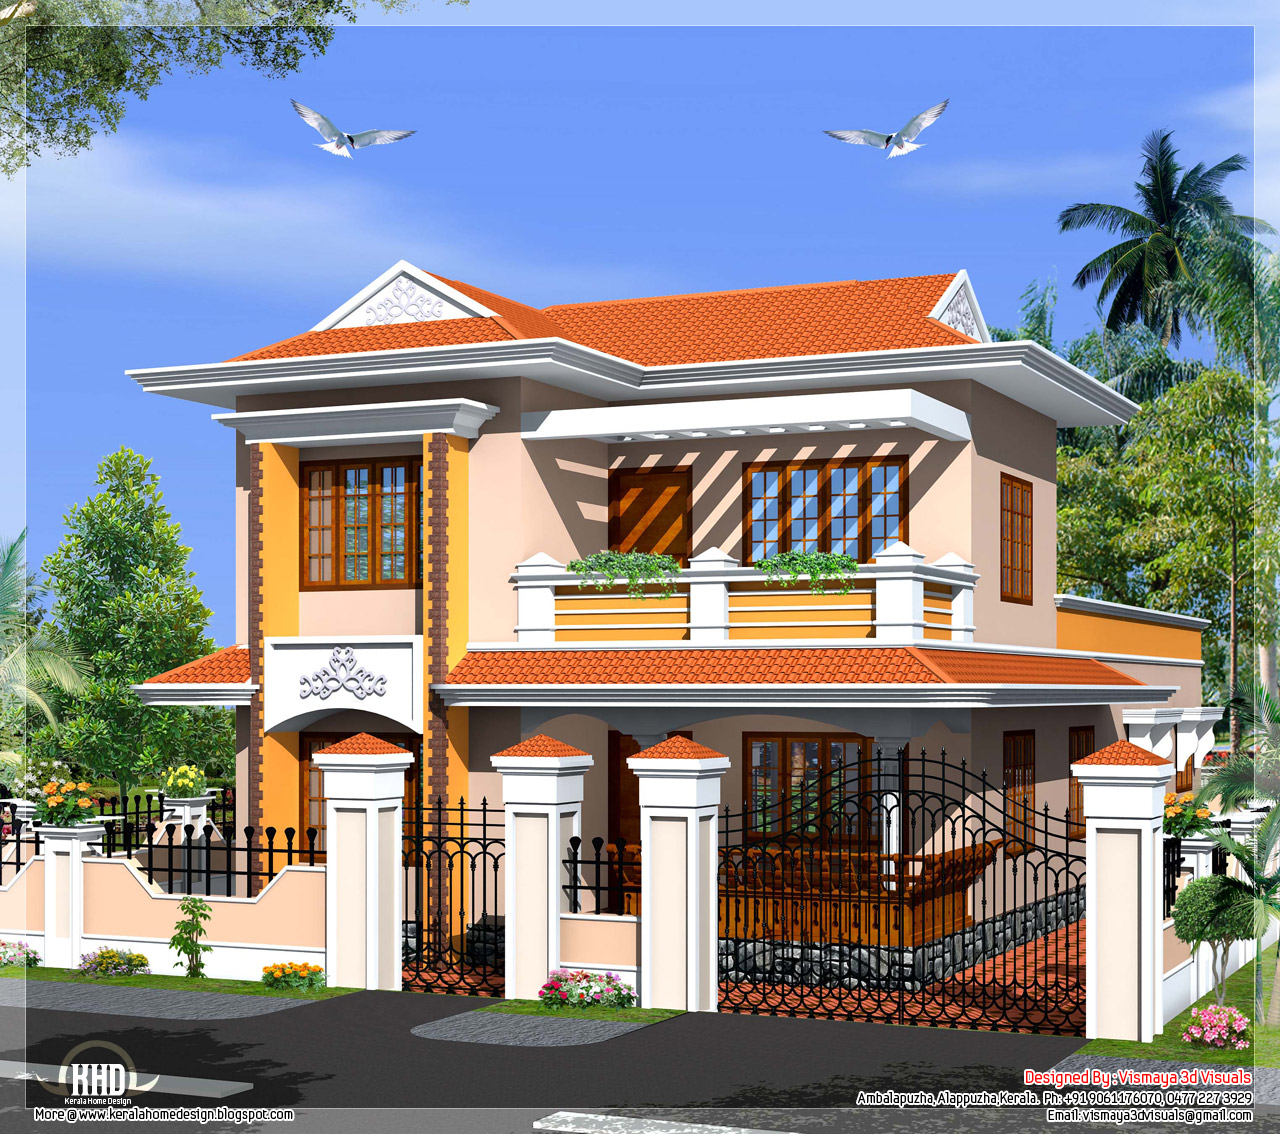 Kerala Model Villa In 2110 In Square Feet Kerala Home Design And Floor Plans